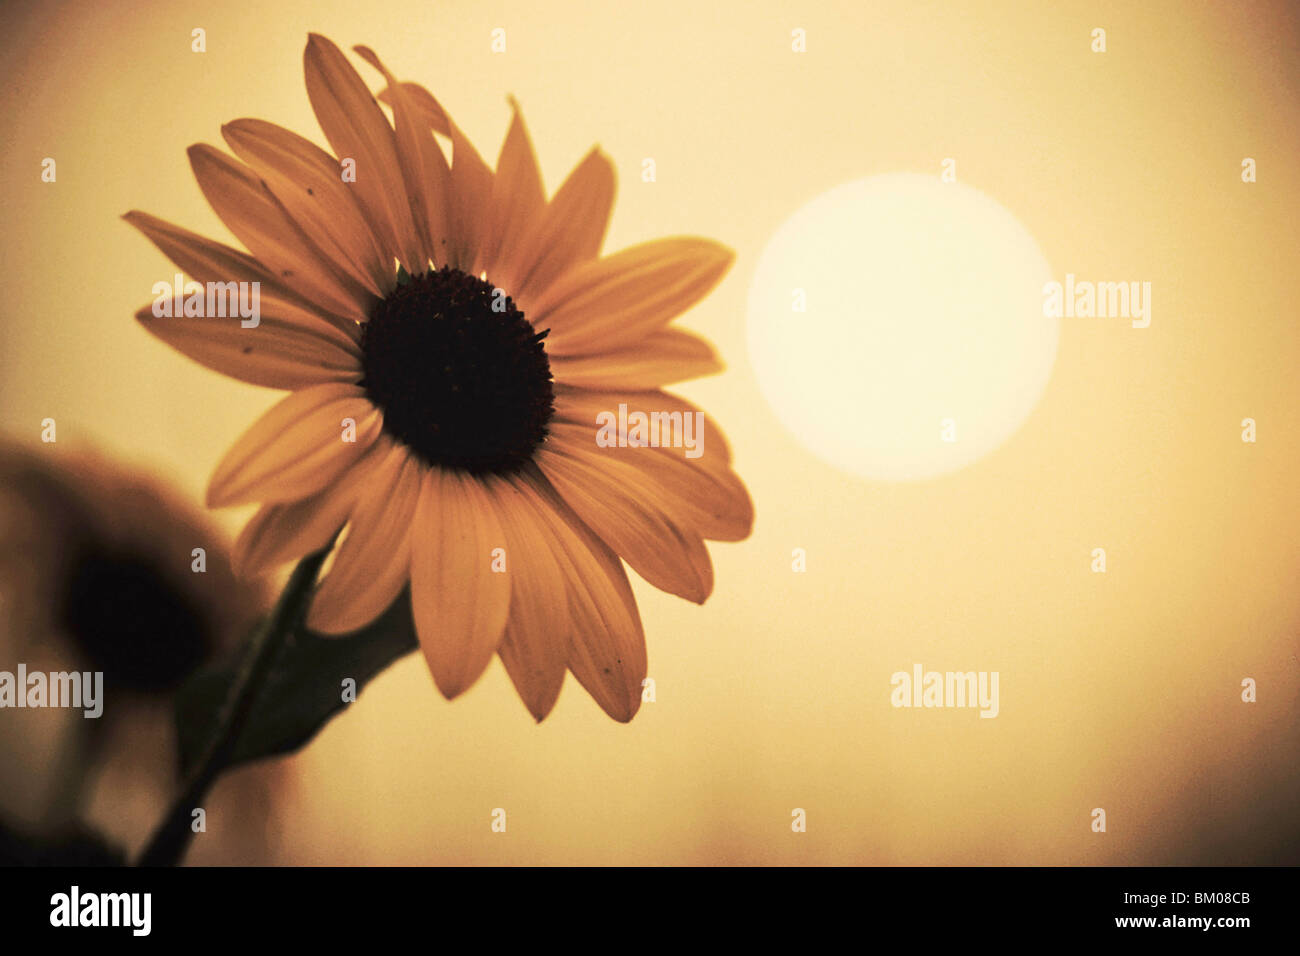 sunflower with tainted brown color and murky sun in the sky affected by the colorado wildfires near boulder - Stock Image